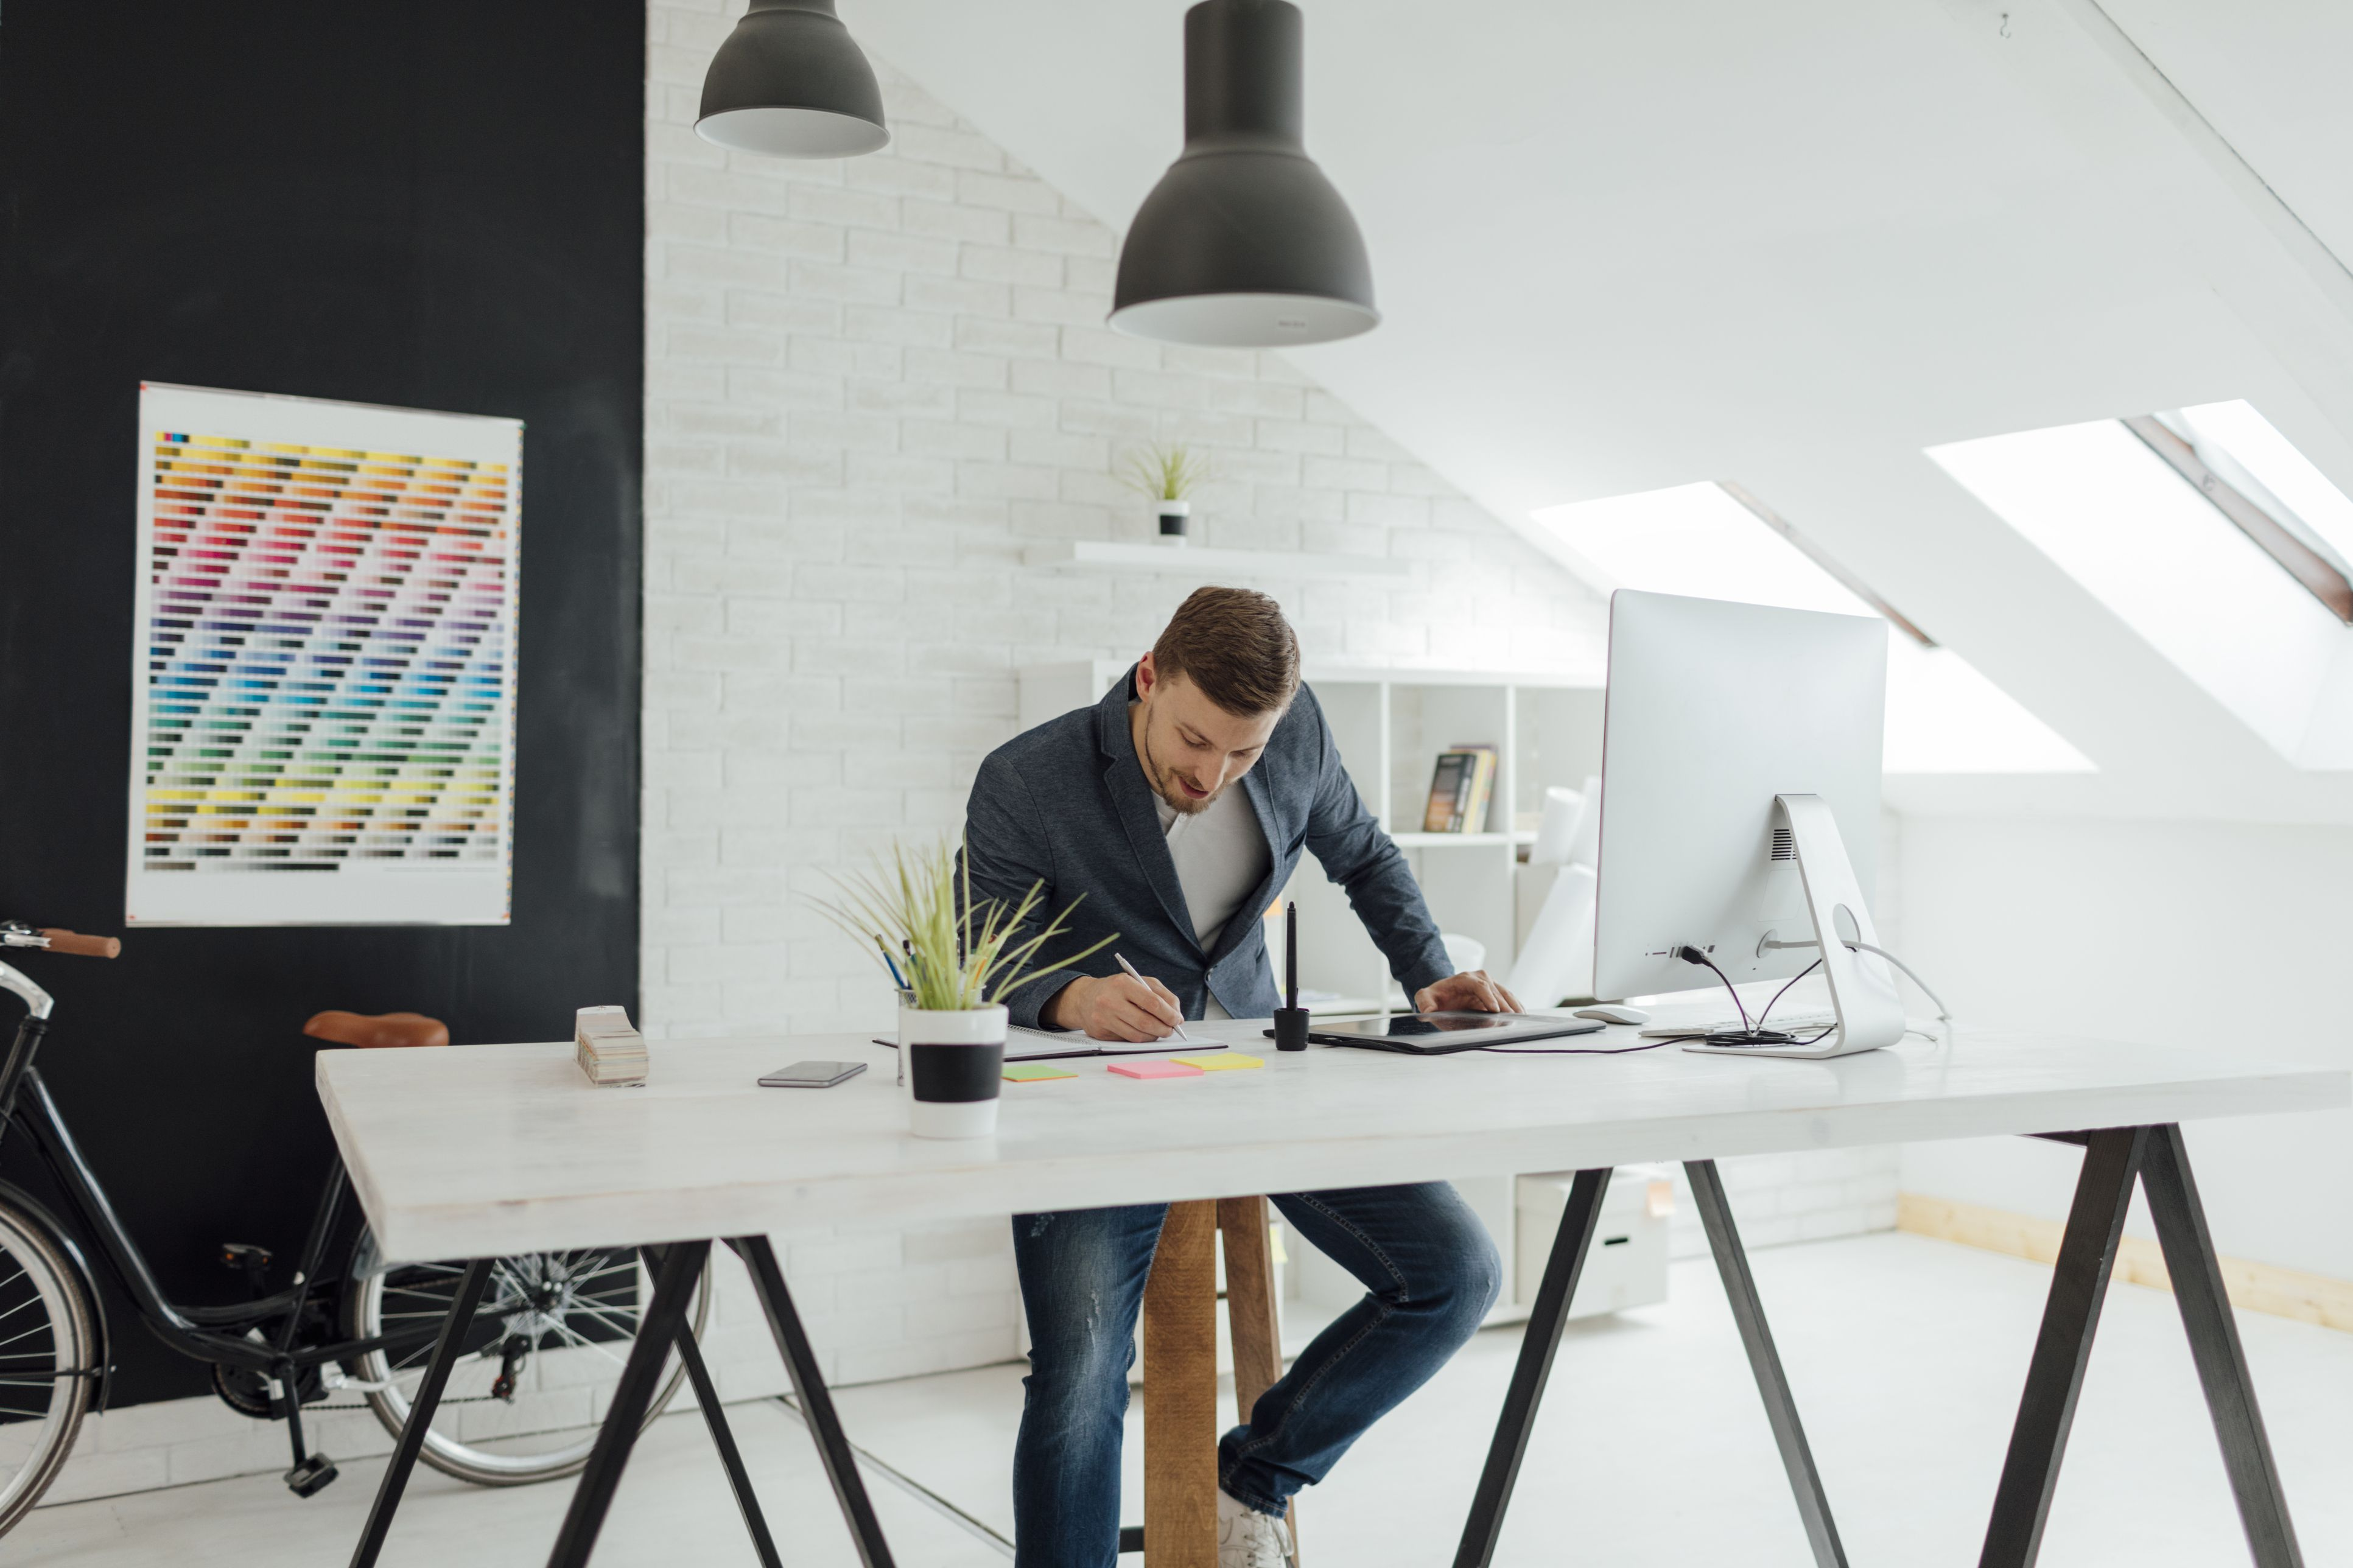 10 Facts You Should Know About Independent Contractors